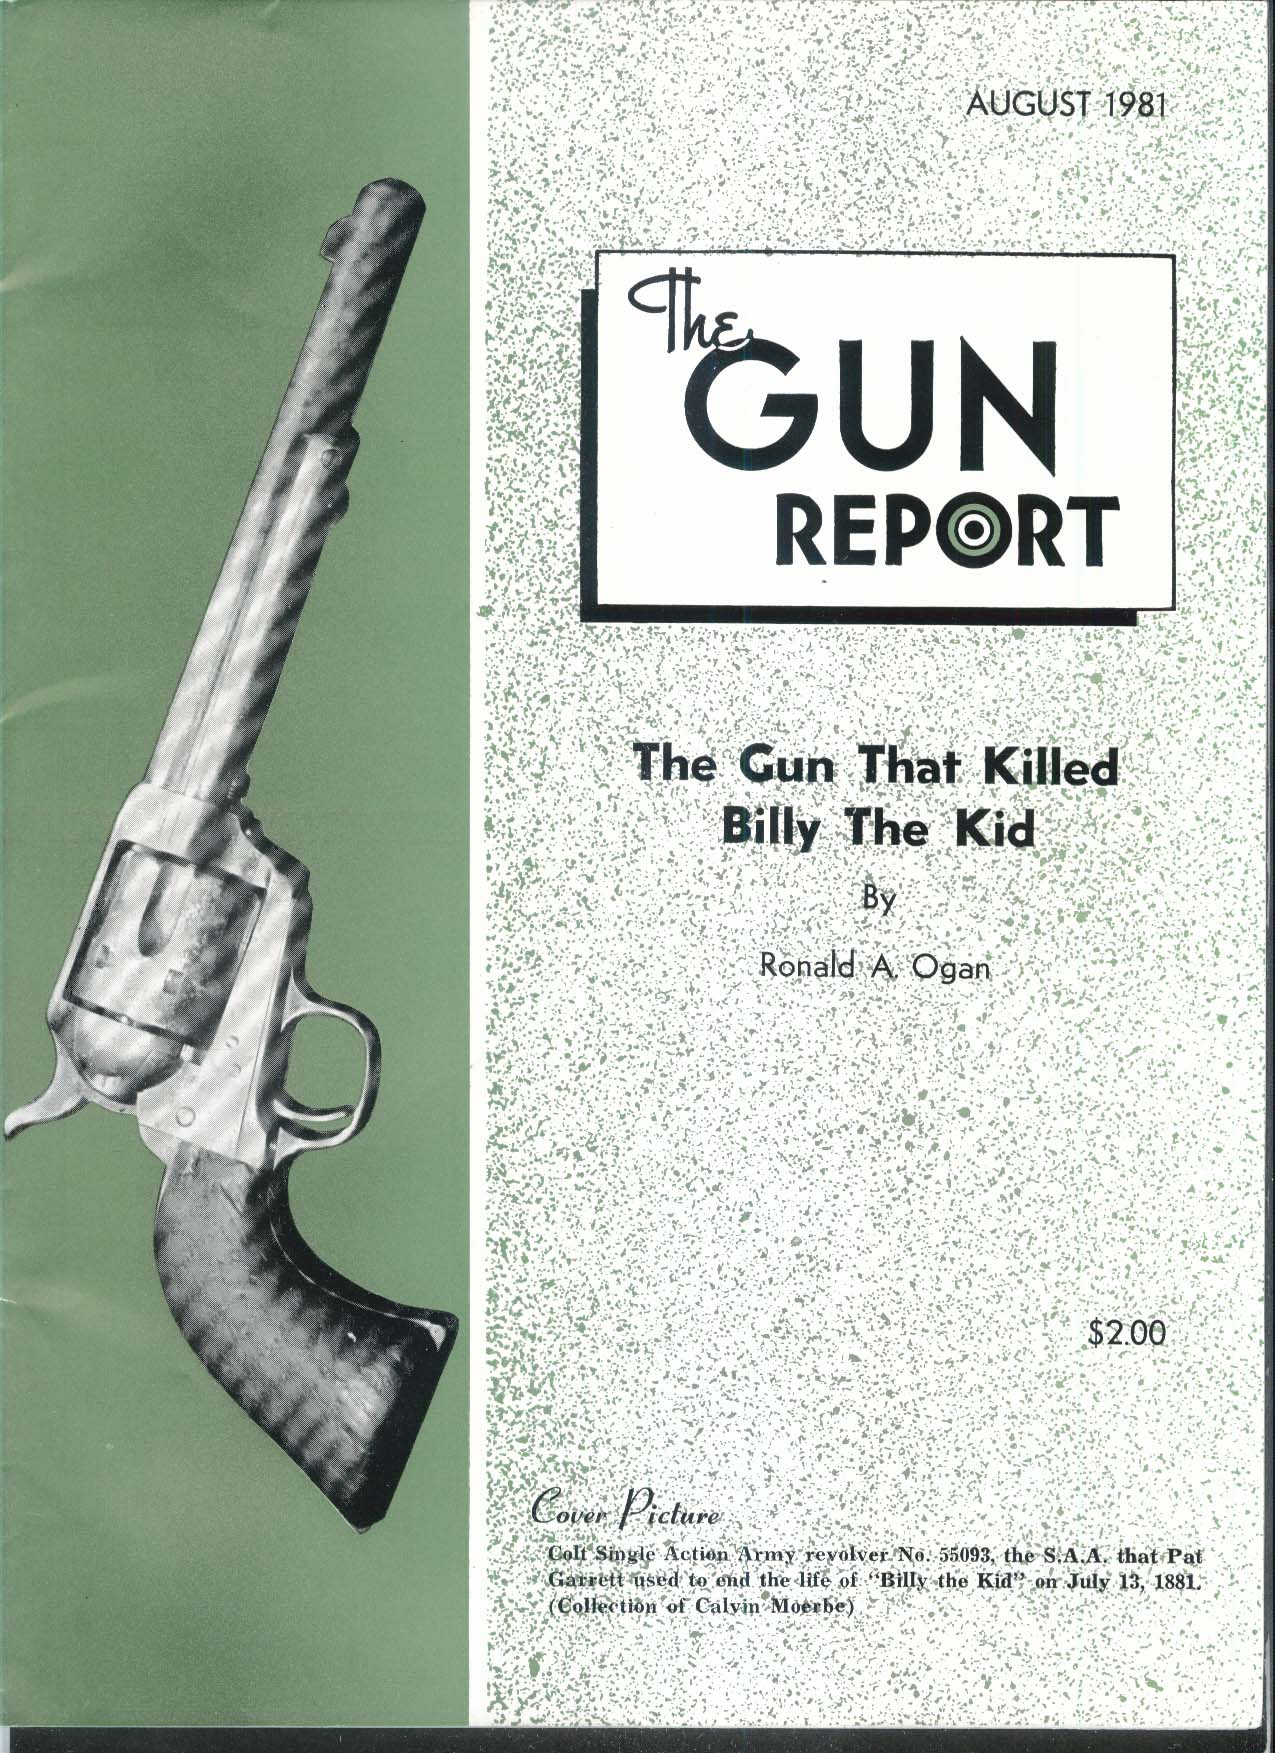 GUN REPORT Colt Single Action Army Billy the Kid Dasch Scheutzen 8 1981